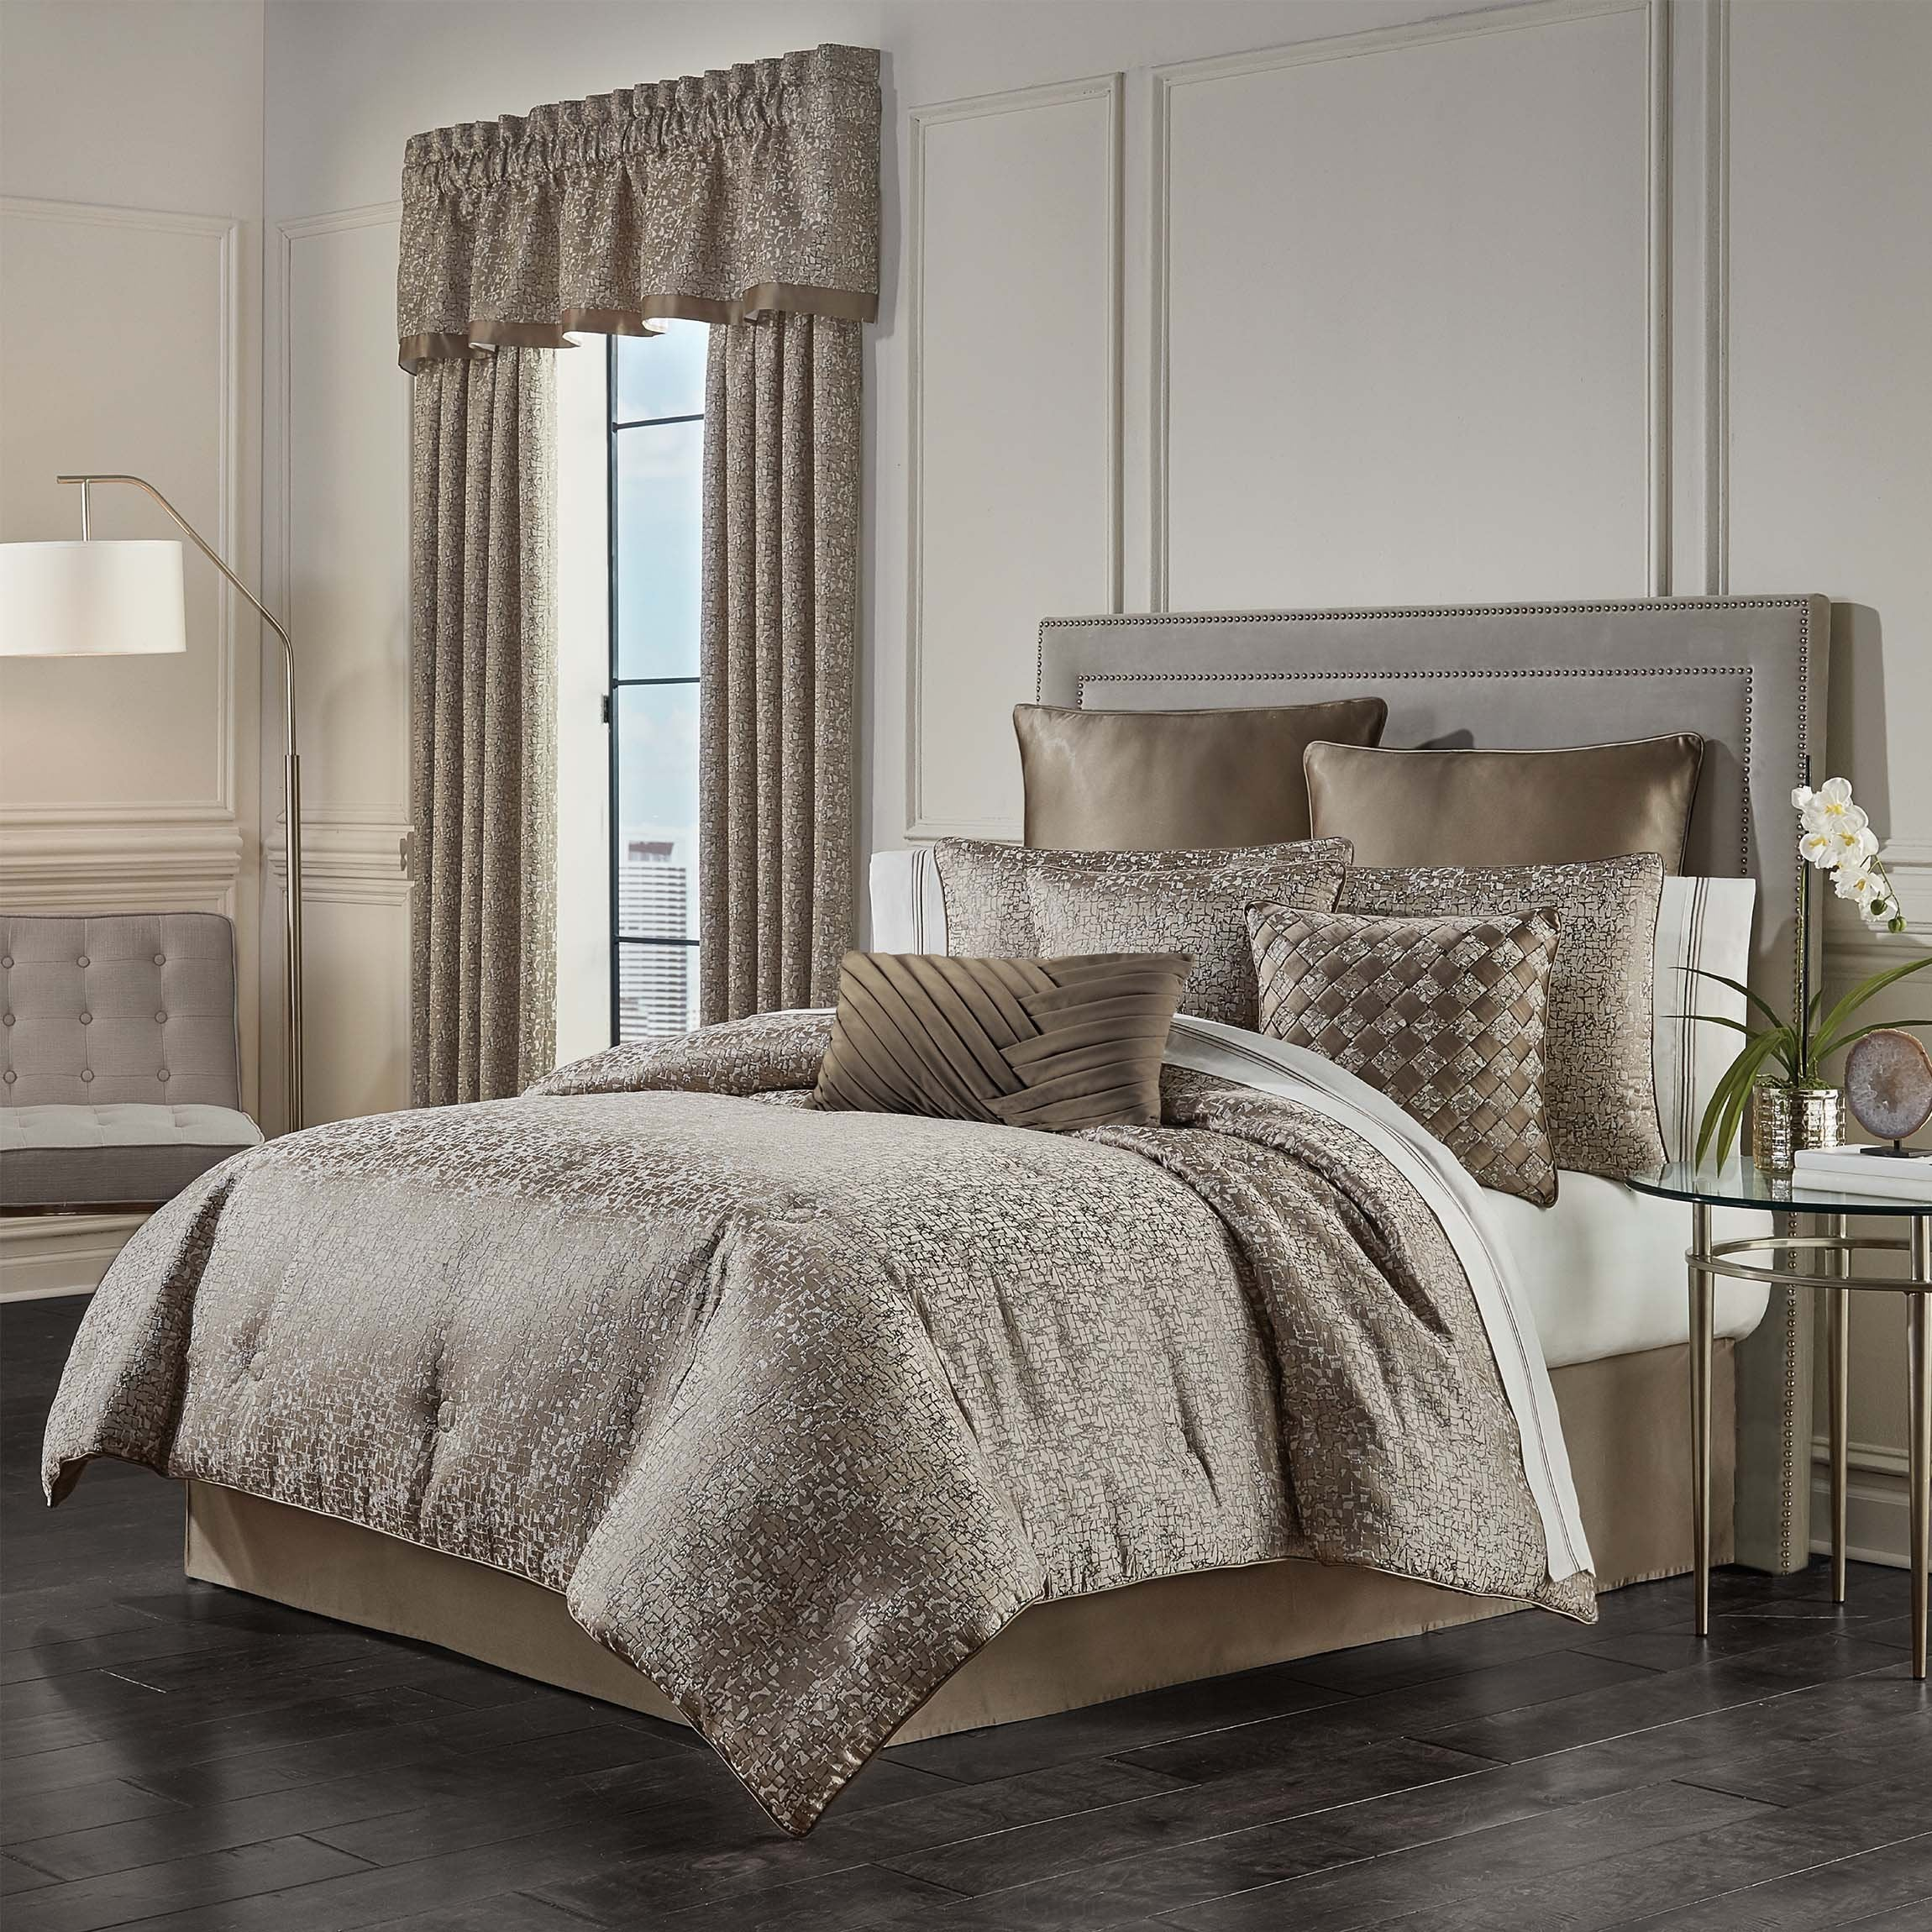 Cracked Taupe Ice 4-Piece Comforter Set [Luxury comforter Sets] [by Latest Bedding]